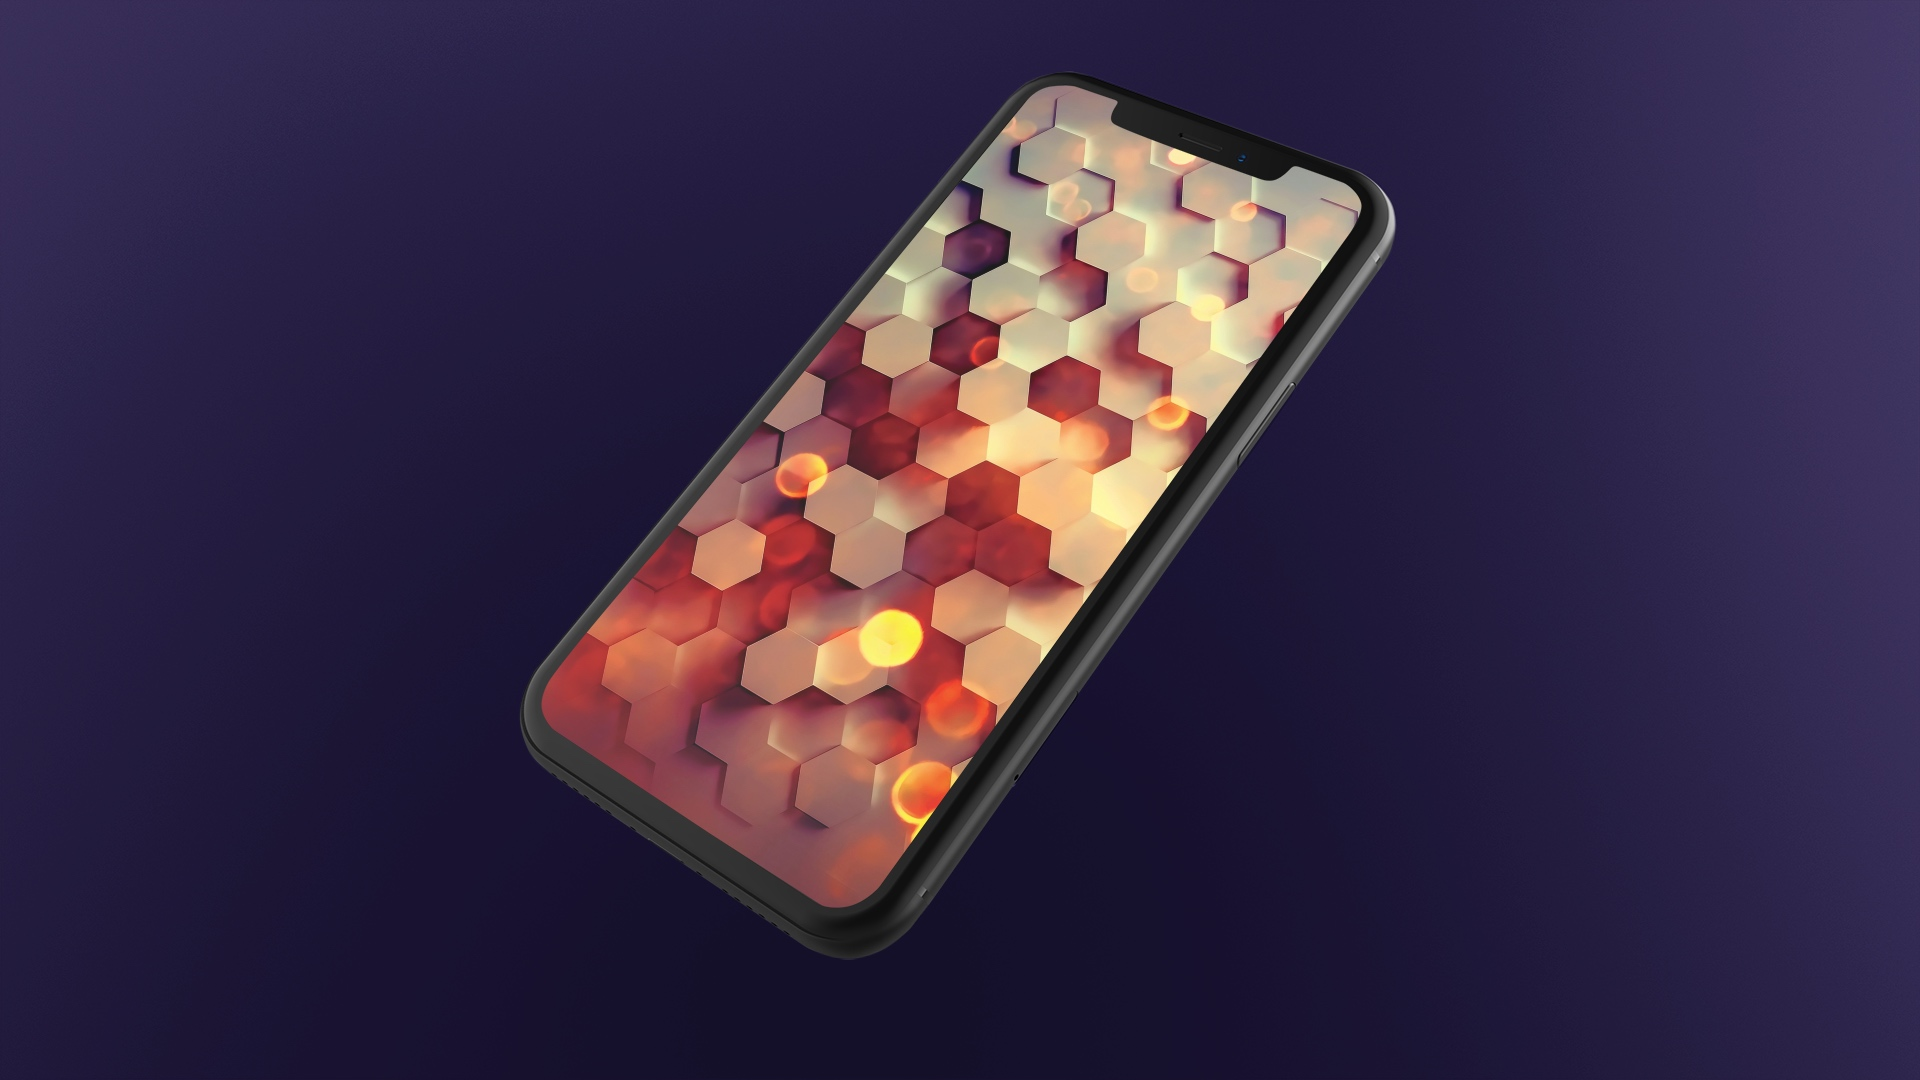 Digital art wallpapers for iPhone